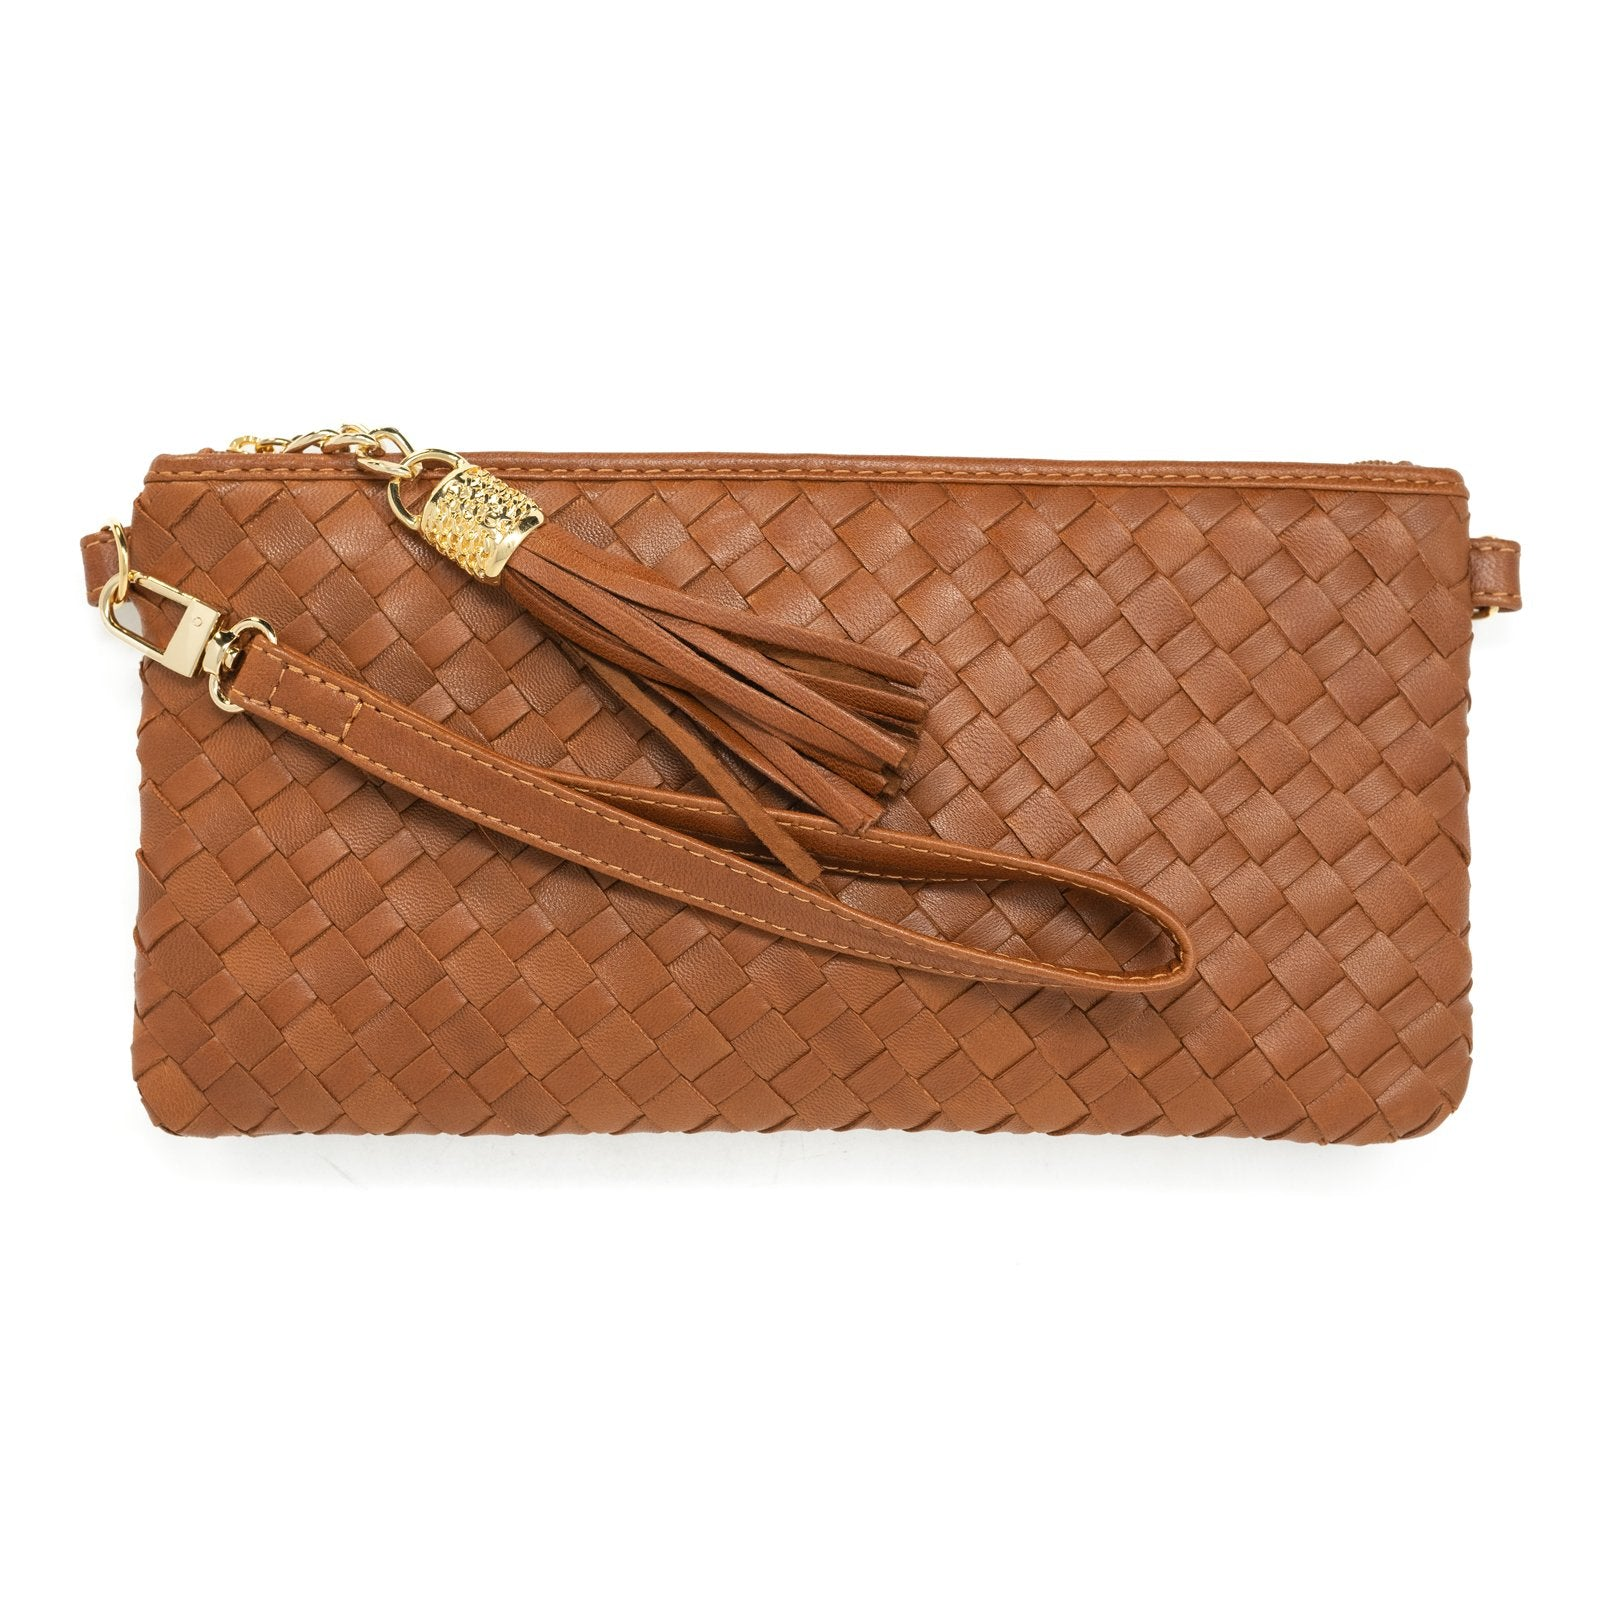 Women Intrecciato Leather Small Soft Clutch Cuoio Intreccio Quadro - Jennifer Tattanelli